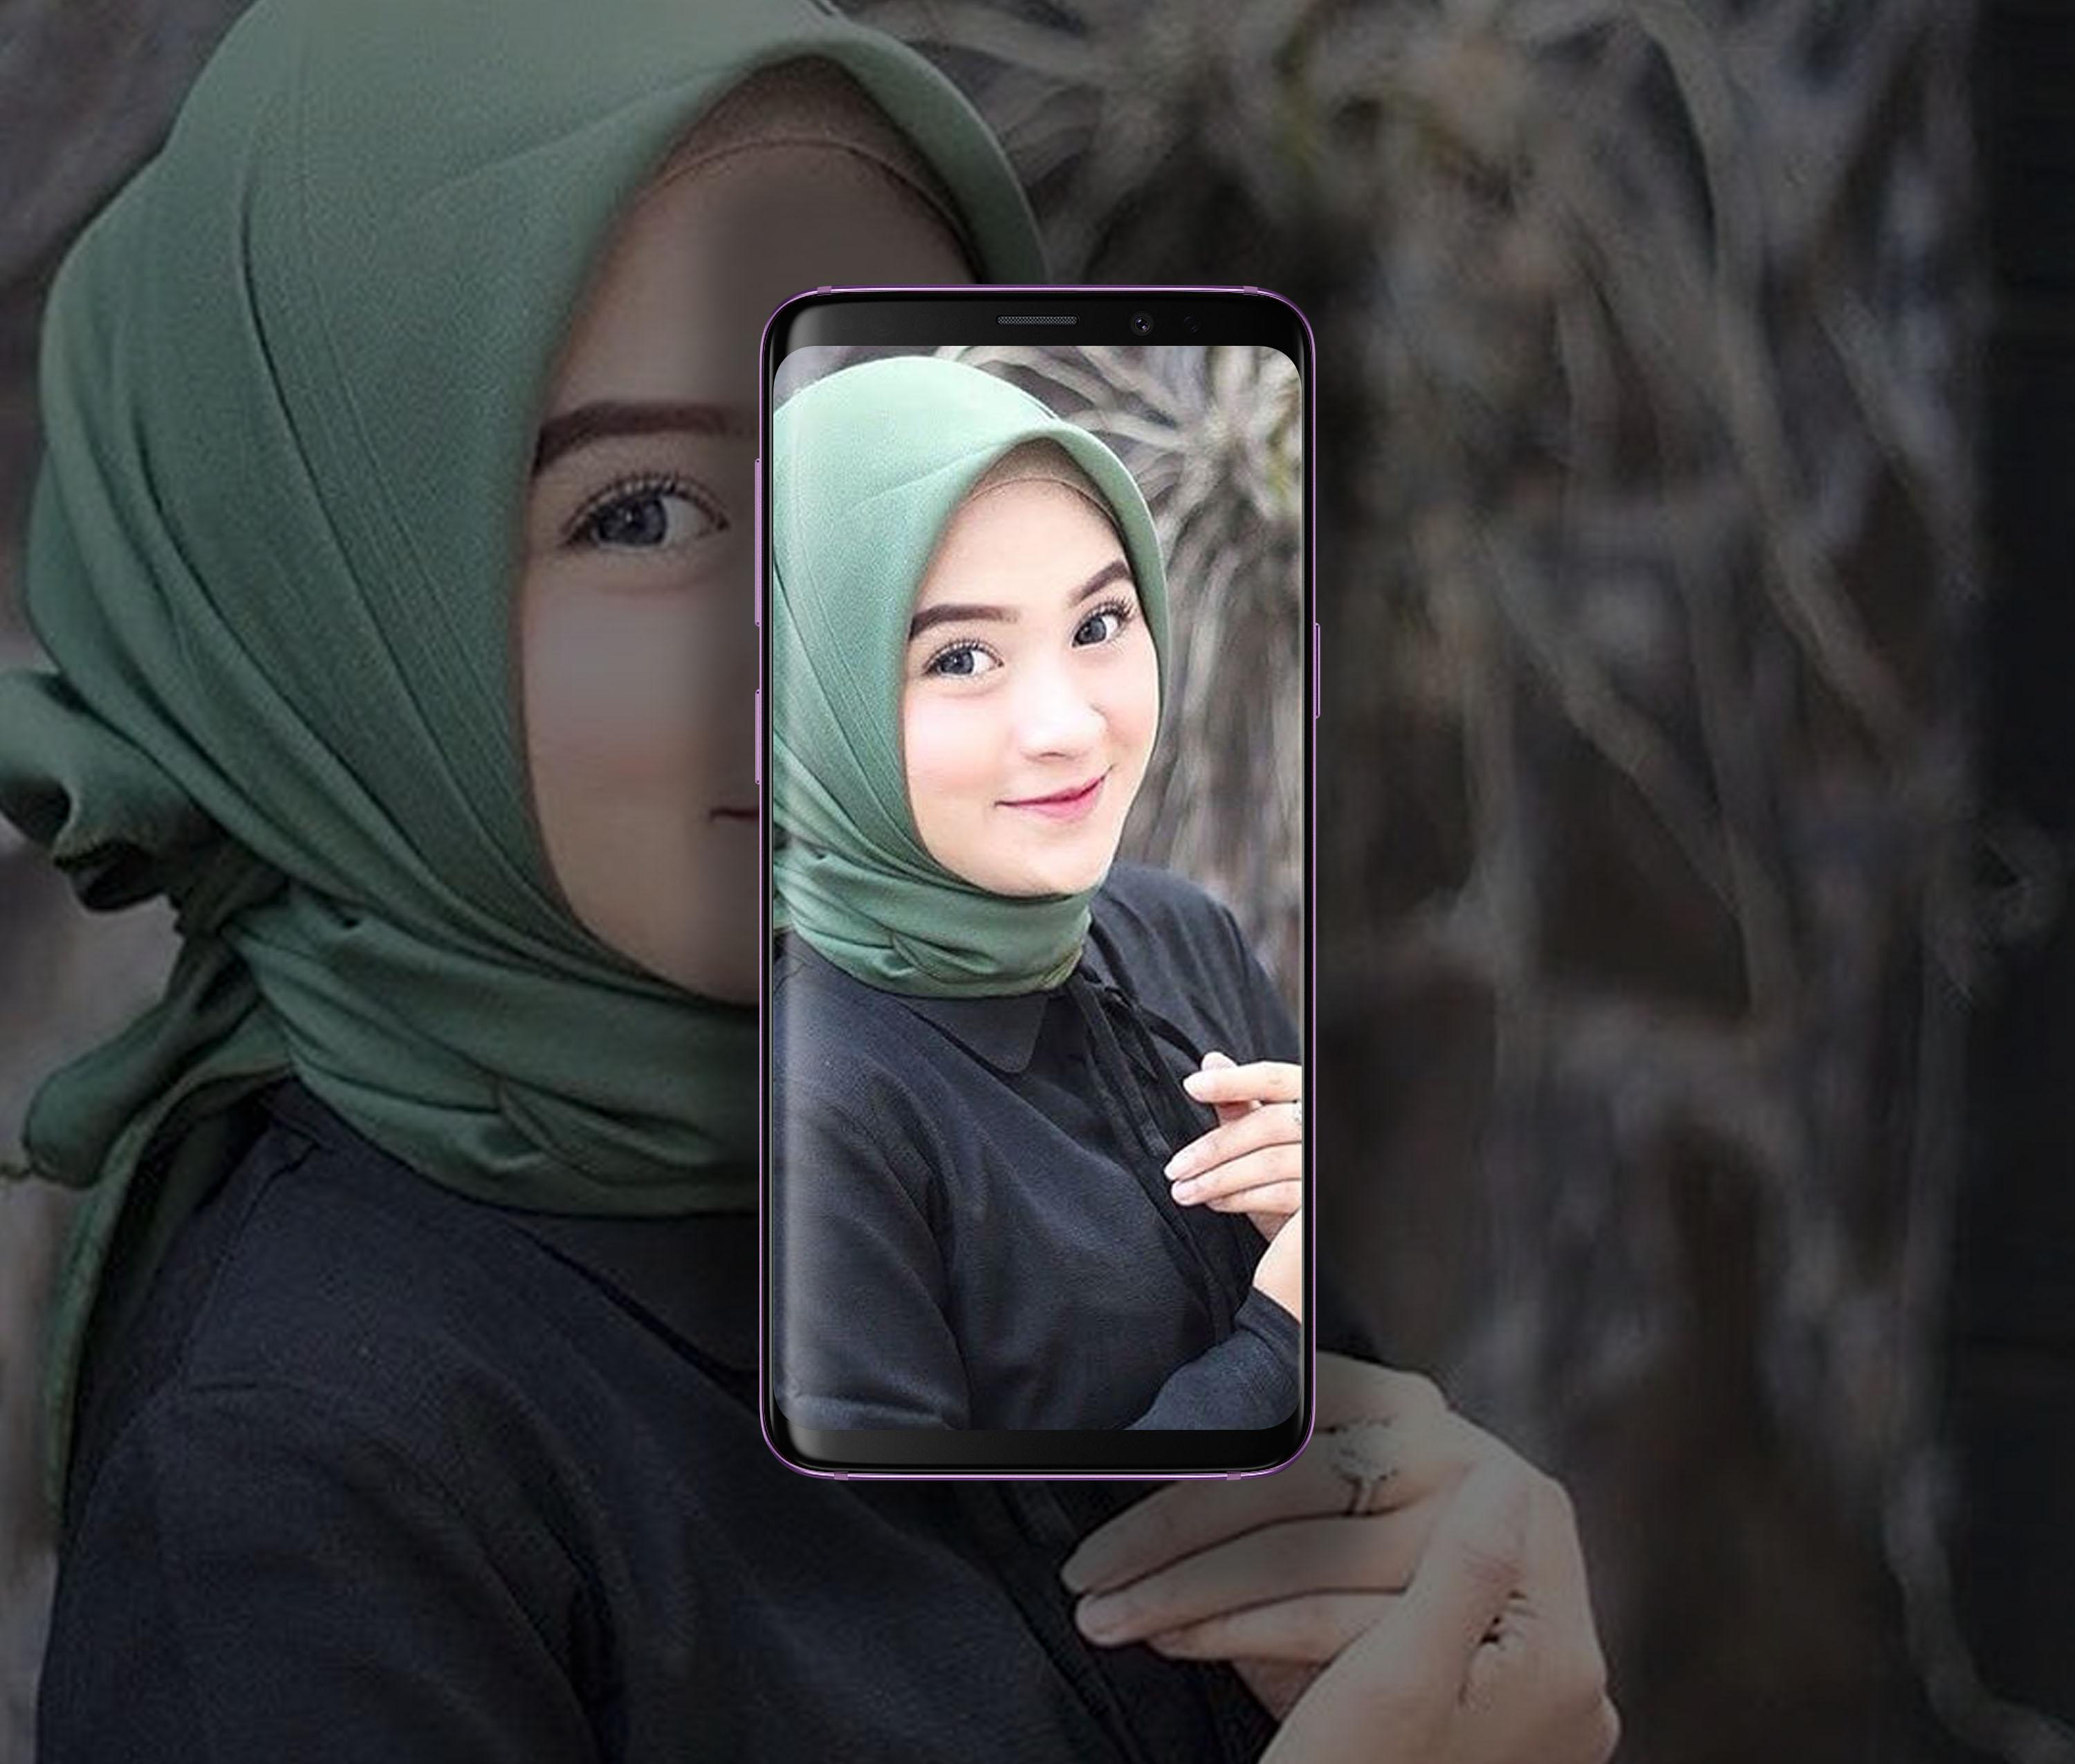 Wallpaper Hijab For Android APK Download